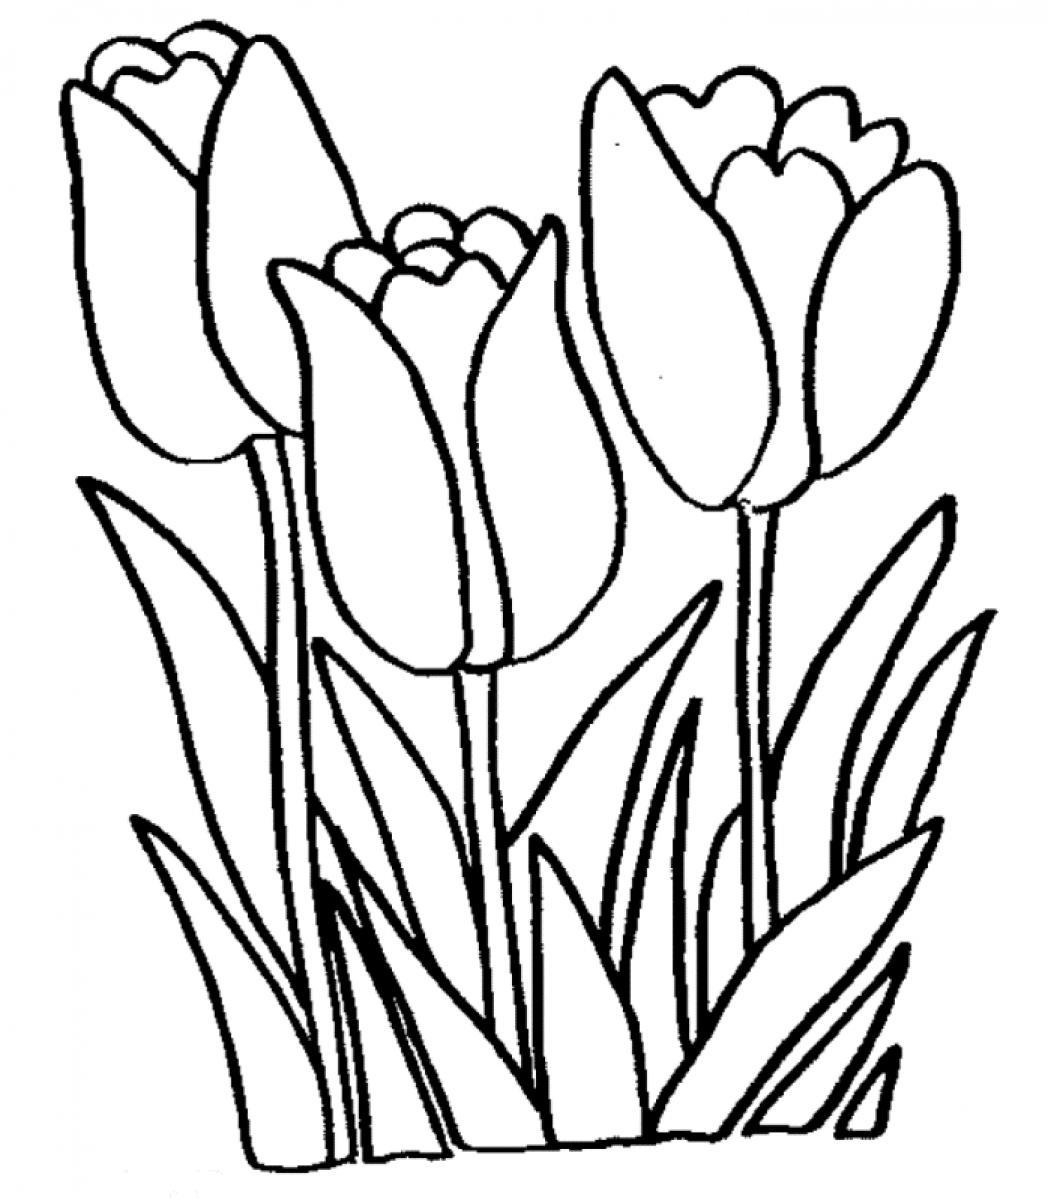 Tulip stem clipart black and wite graphic transparent library Tulip Clipart Black And White Hd | Letters in Tulip Clipart ... graphic transparent library